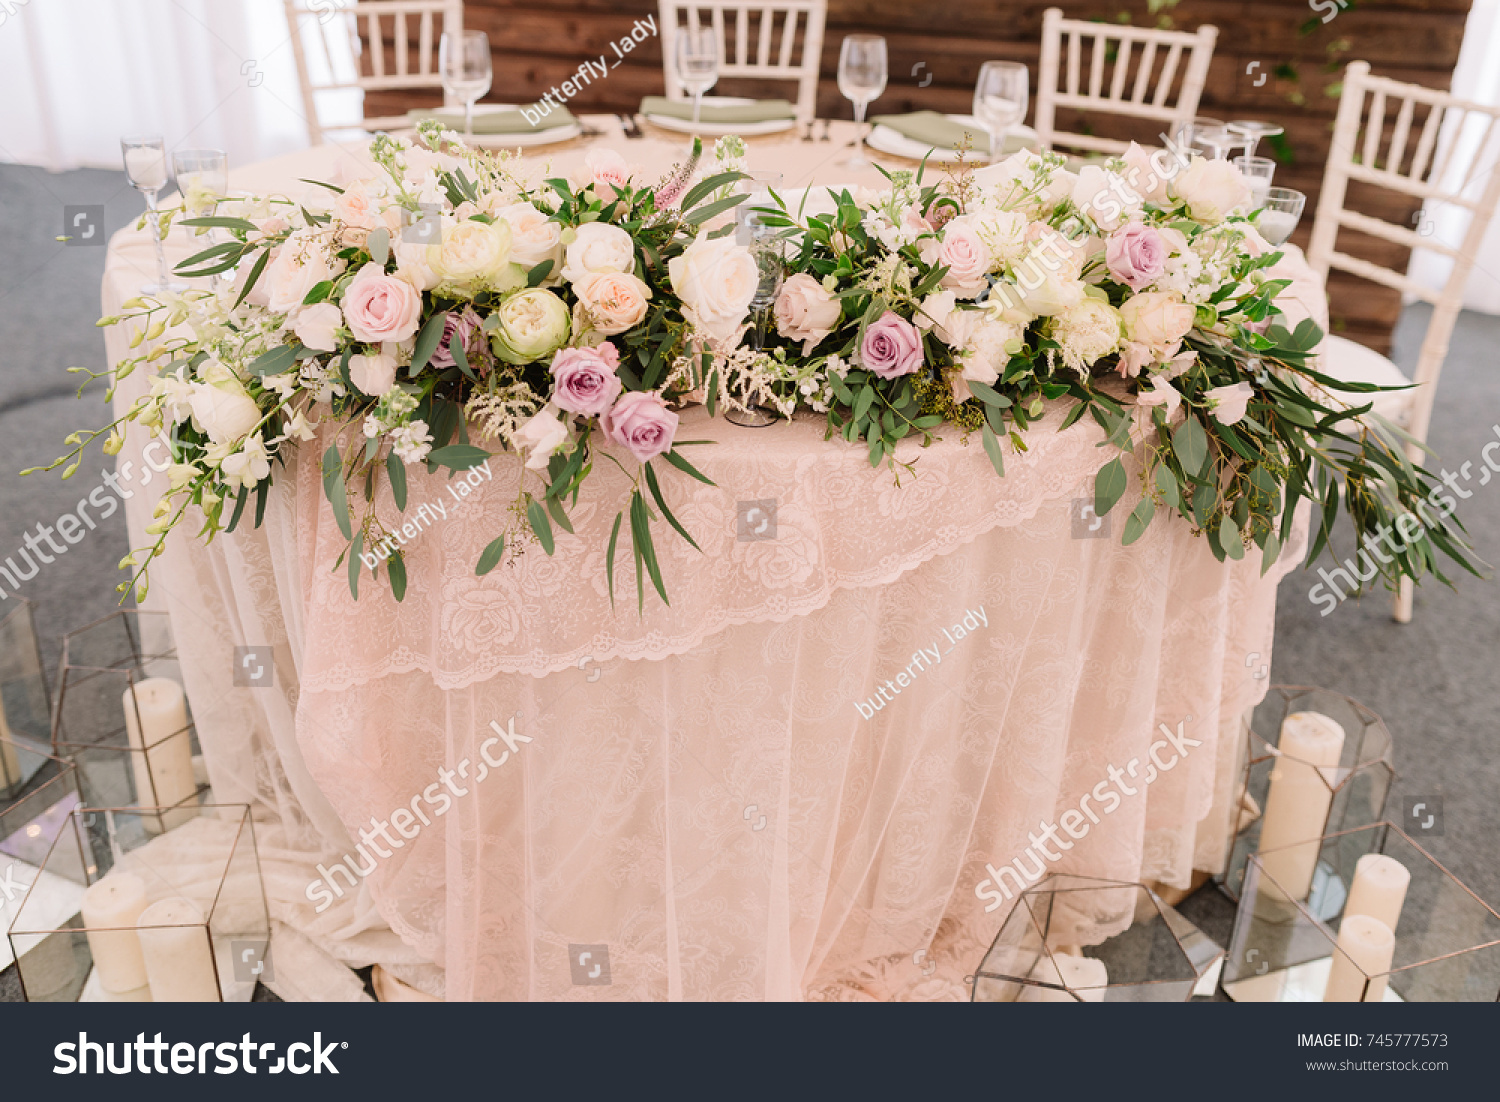 Wedding Floral Table Decoration Candles Transparent Stock Photo ...